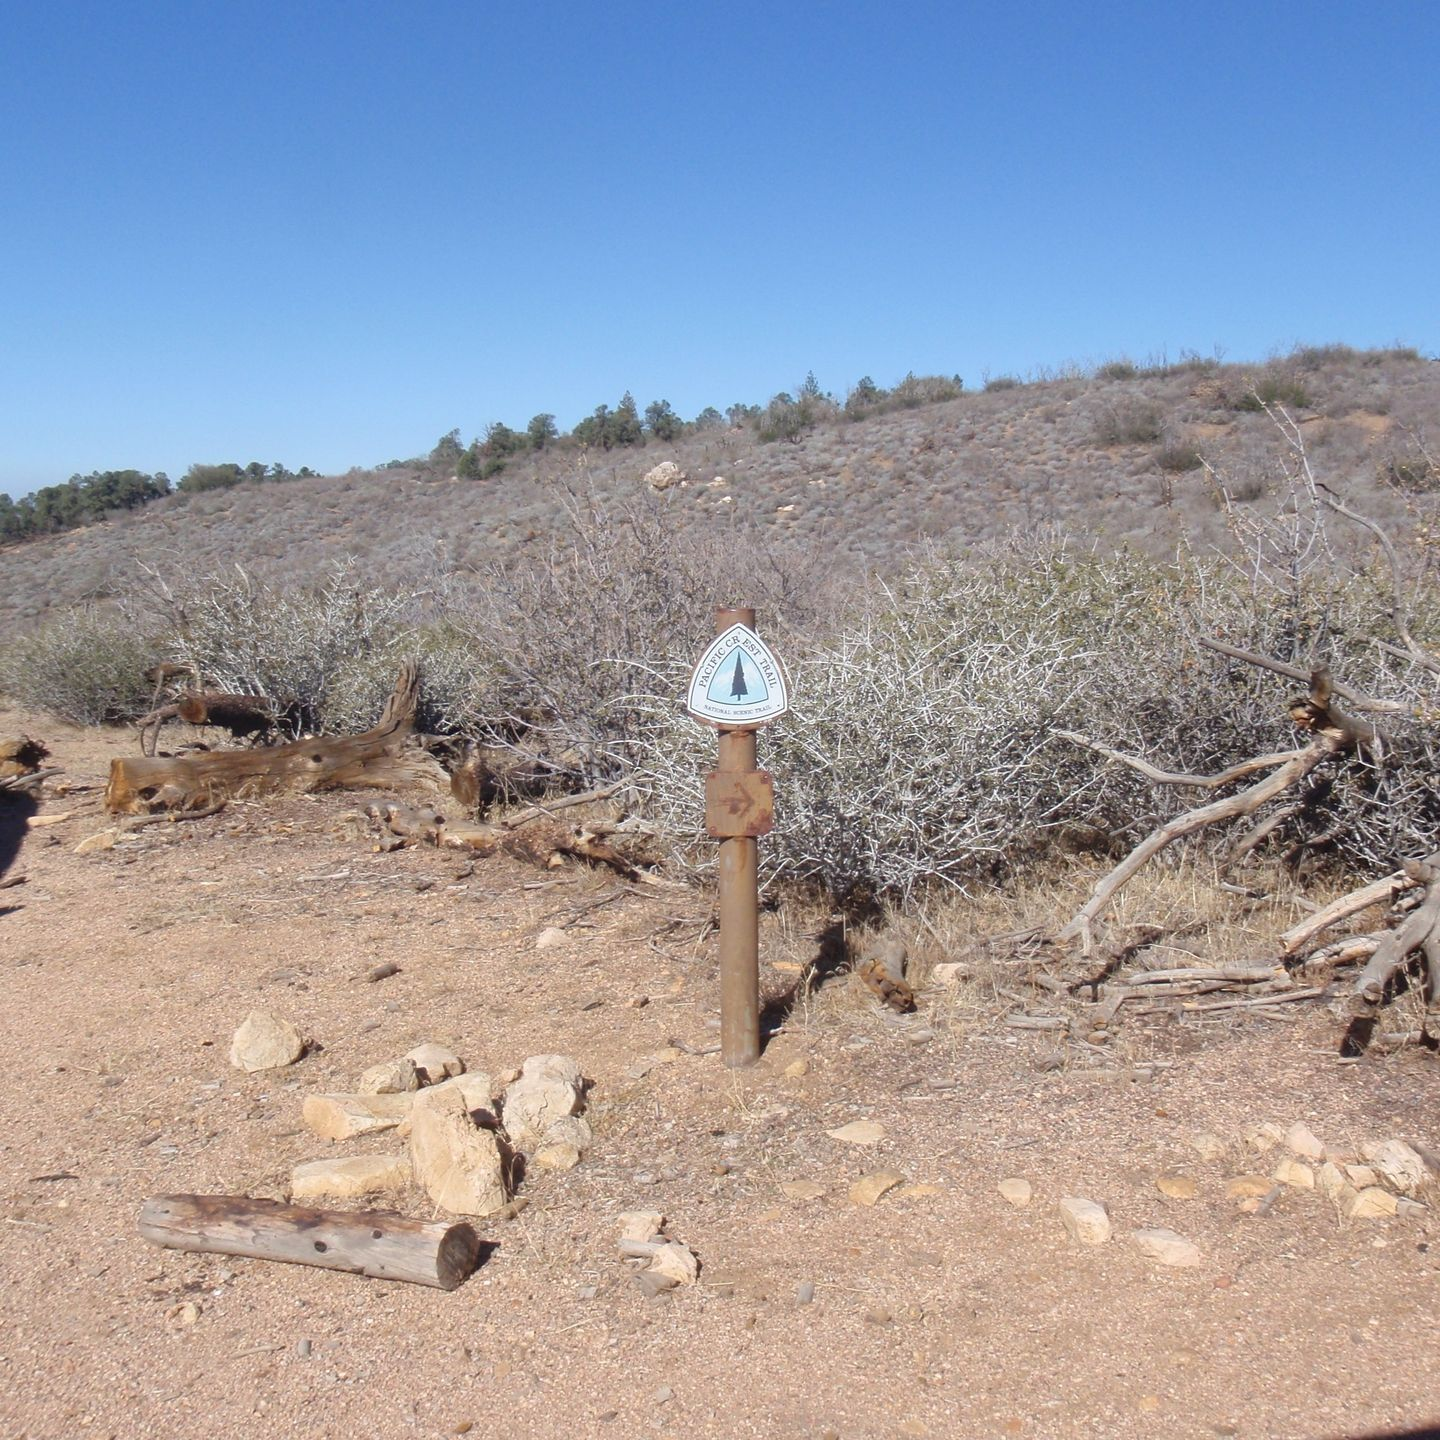 SC65 - McIvers Cabin - Waypoint 13: Pacific Crest Trail sign on the left